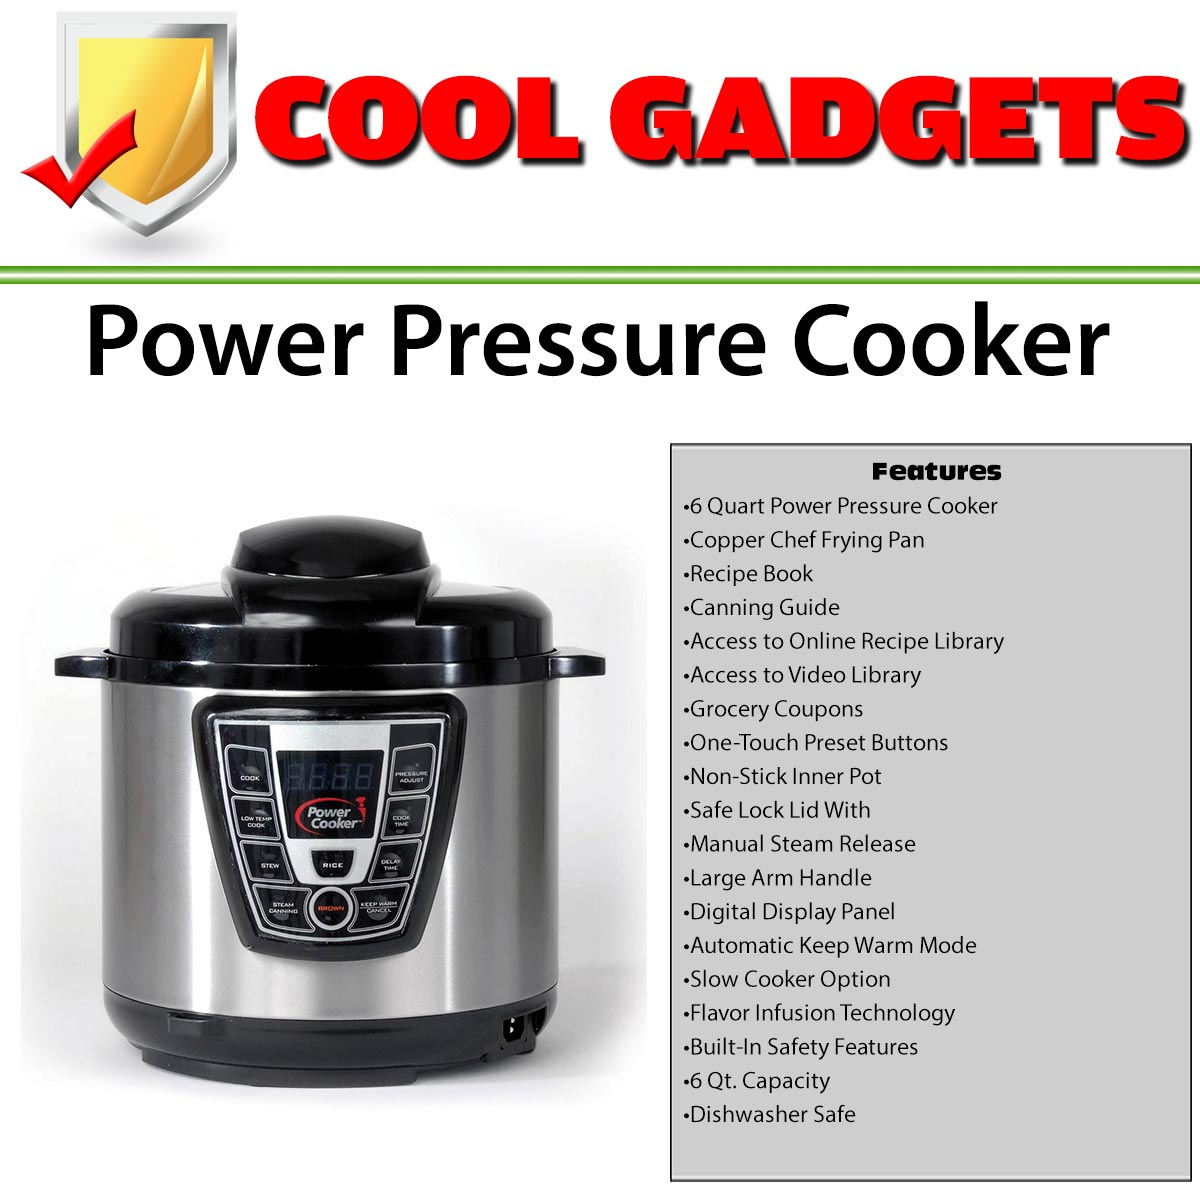 ___Cool-Gadgets-power-pressure-cooker_Rev-1